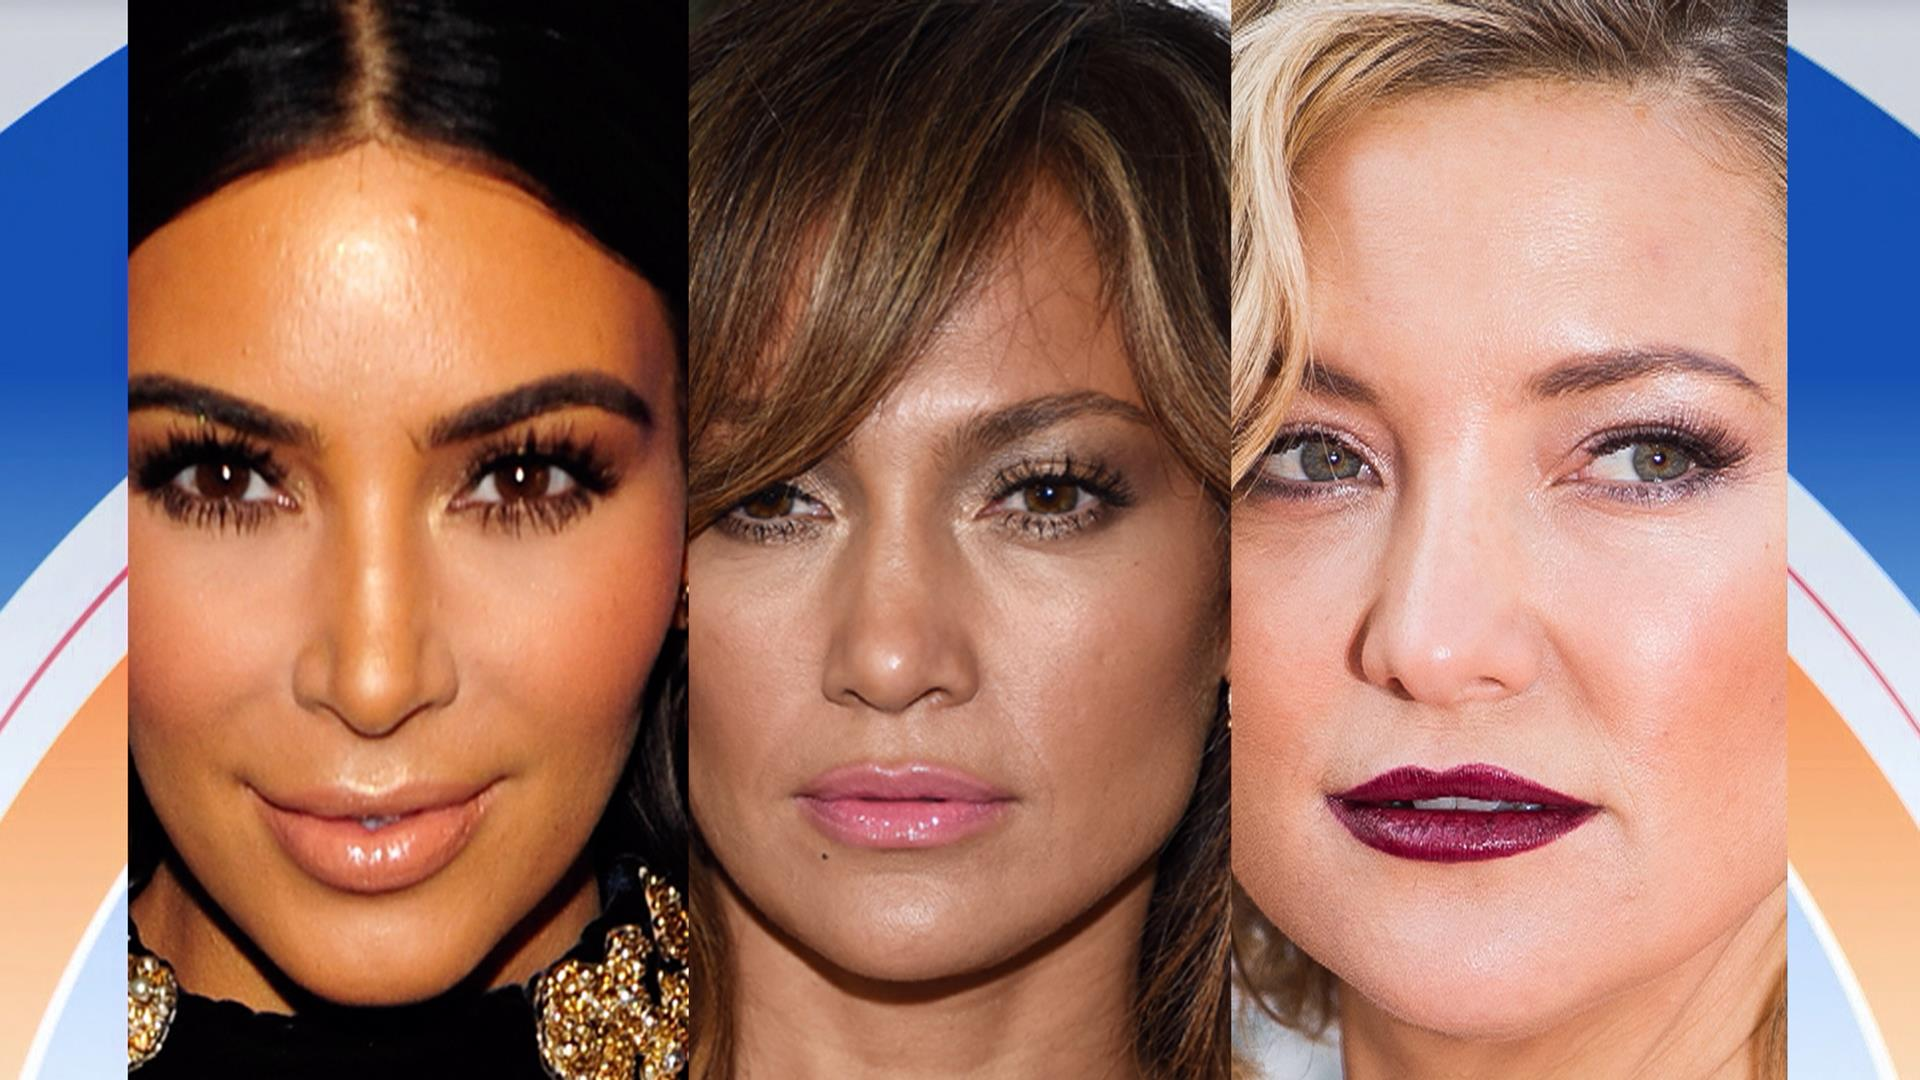 How to apply blush correctly the 2 finger trick to save your makeup how to do makeup like kim kardashian j lo kate hudson ccuart Choice Image